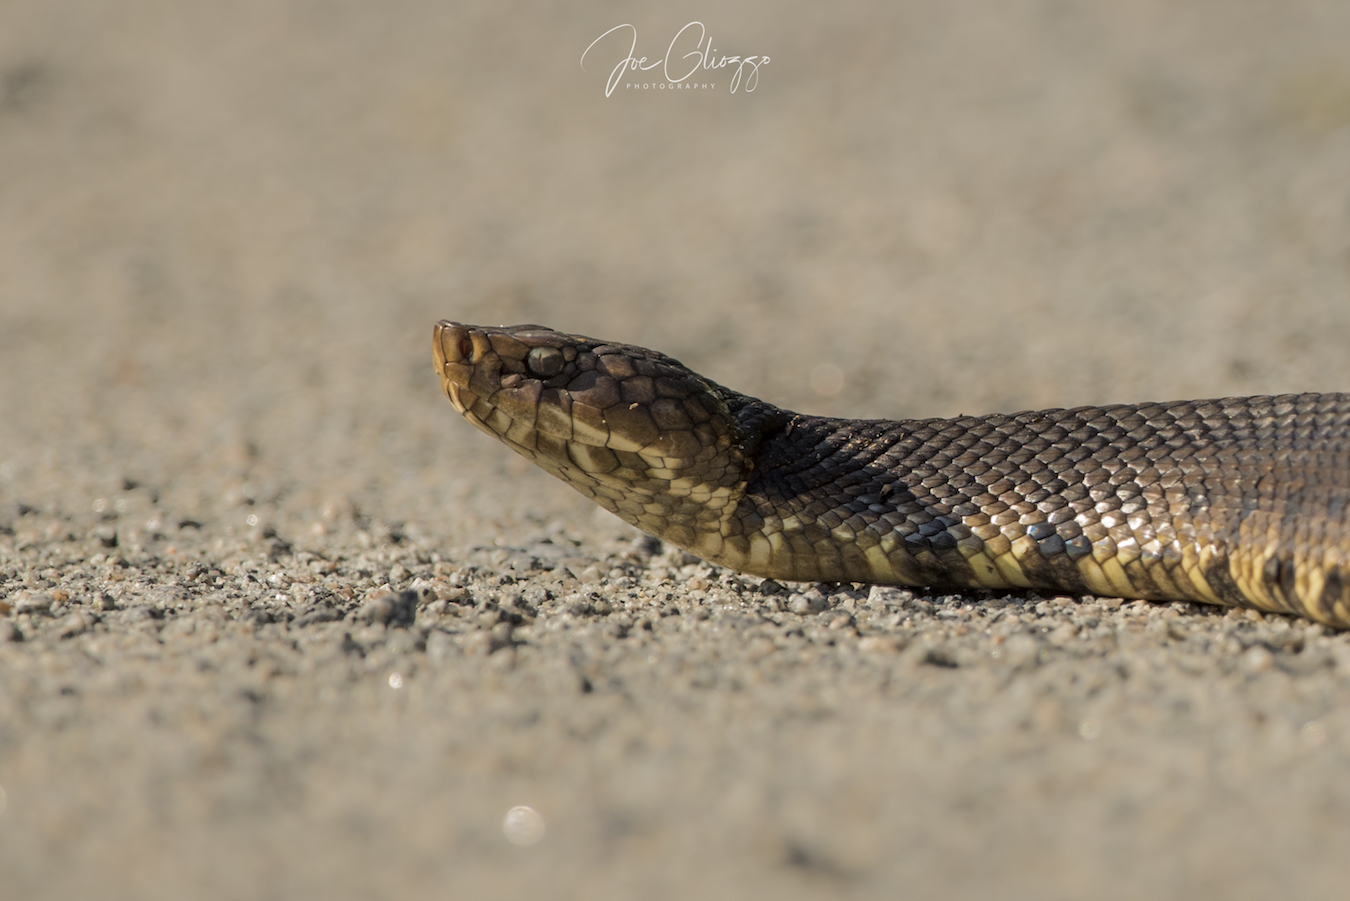 this snake making his way across the road did not show me his mouth but I think it is a cotton mouth snake. image: j©oe gliozzo